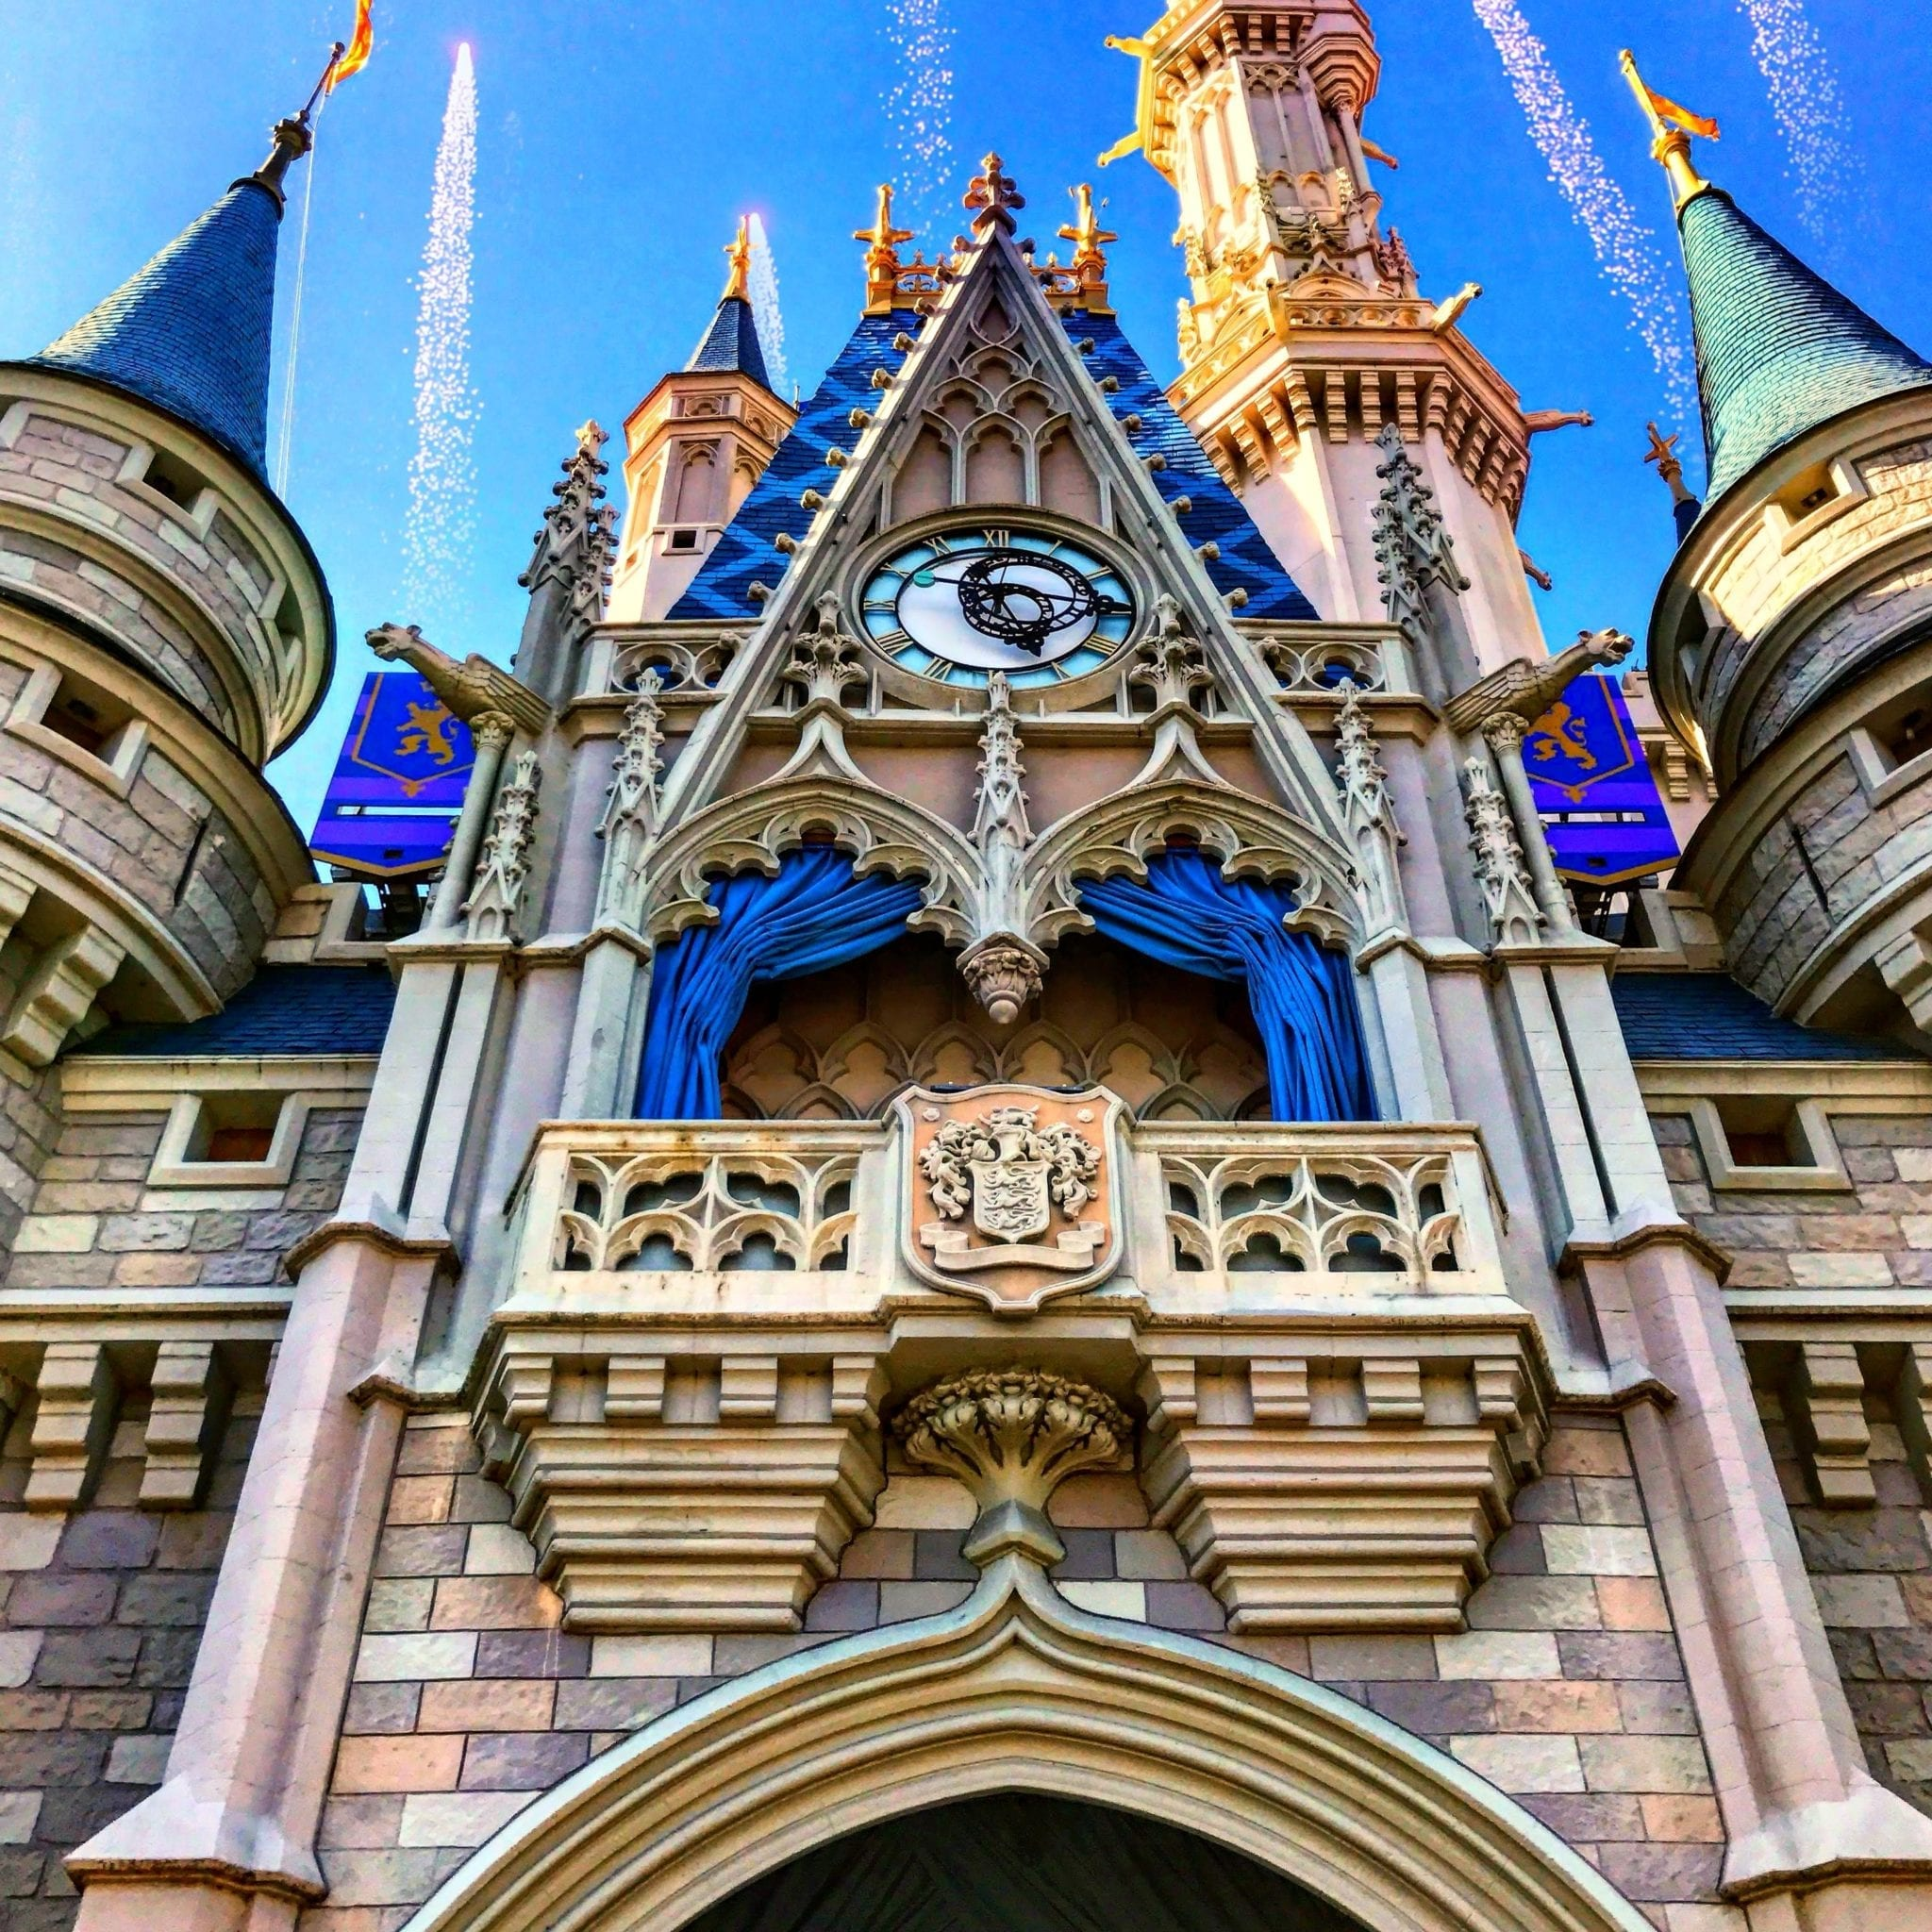 Top Tips for Walt Disney World